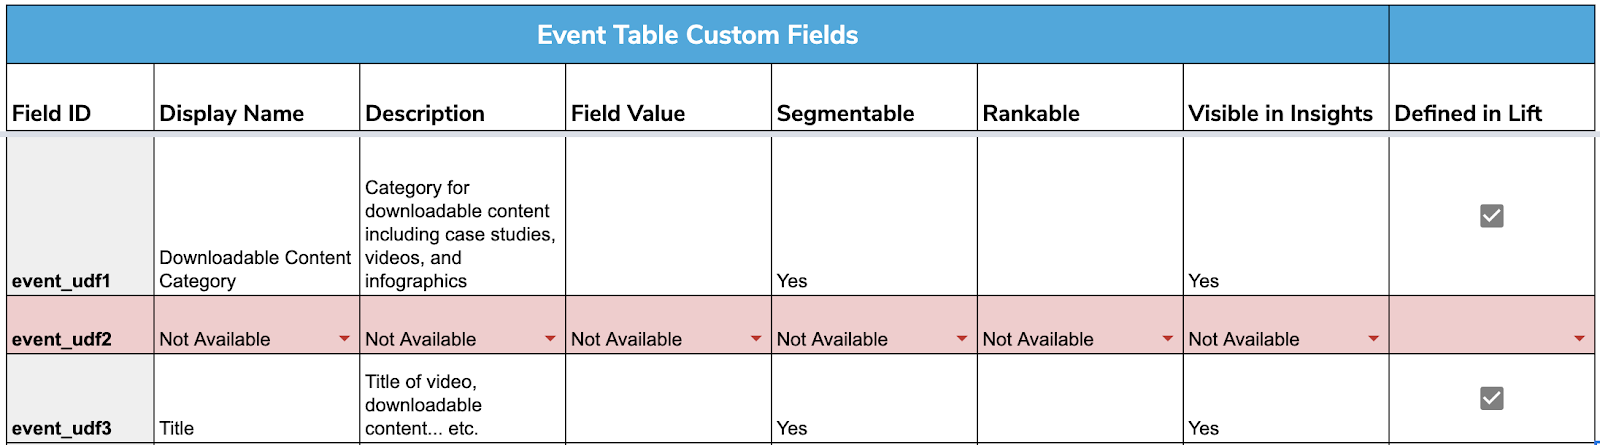 image of Event Table Custom Fields